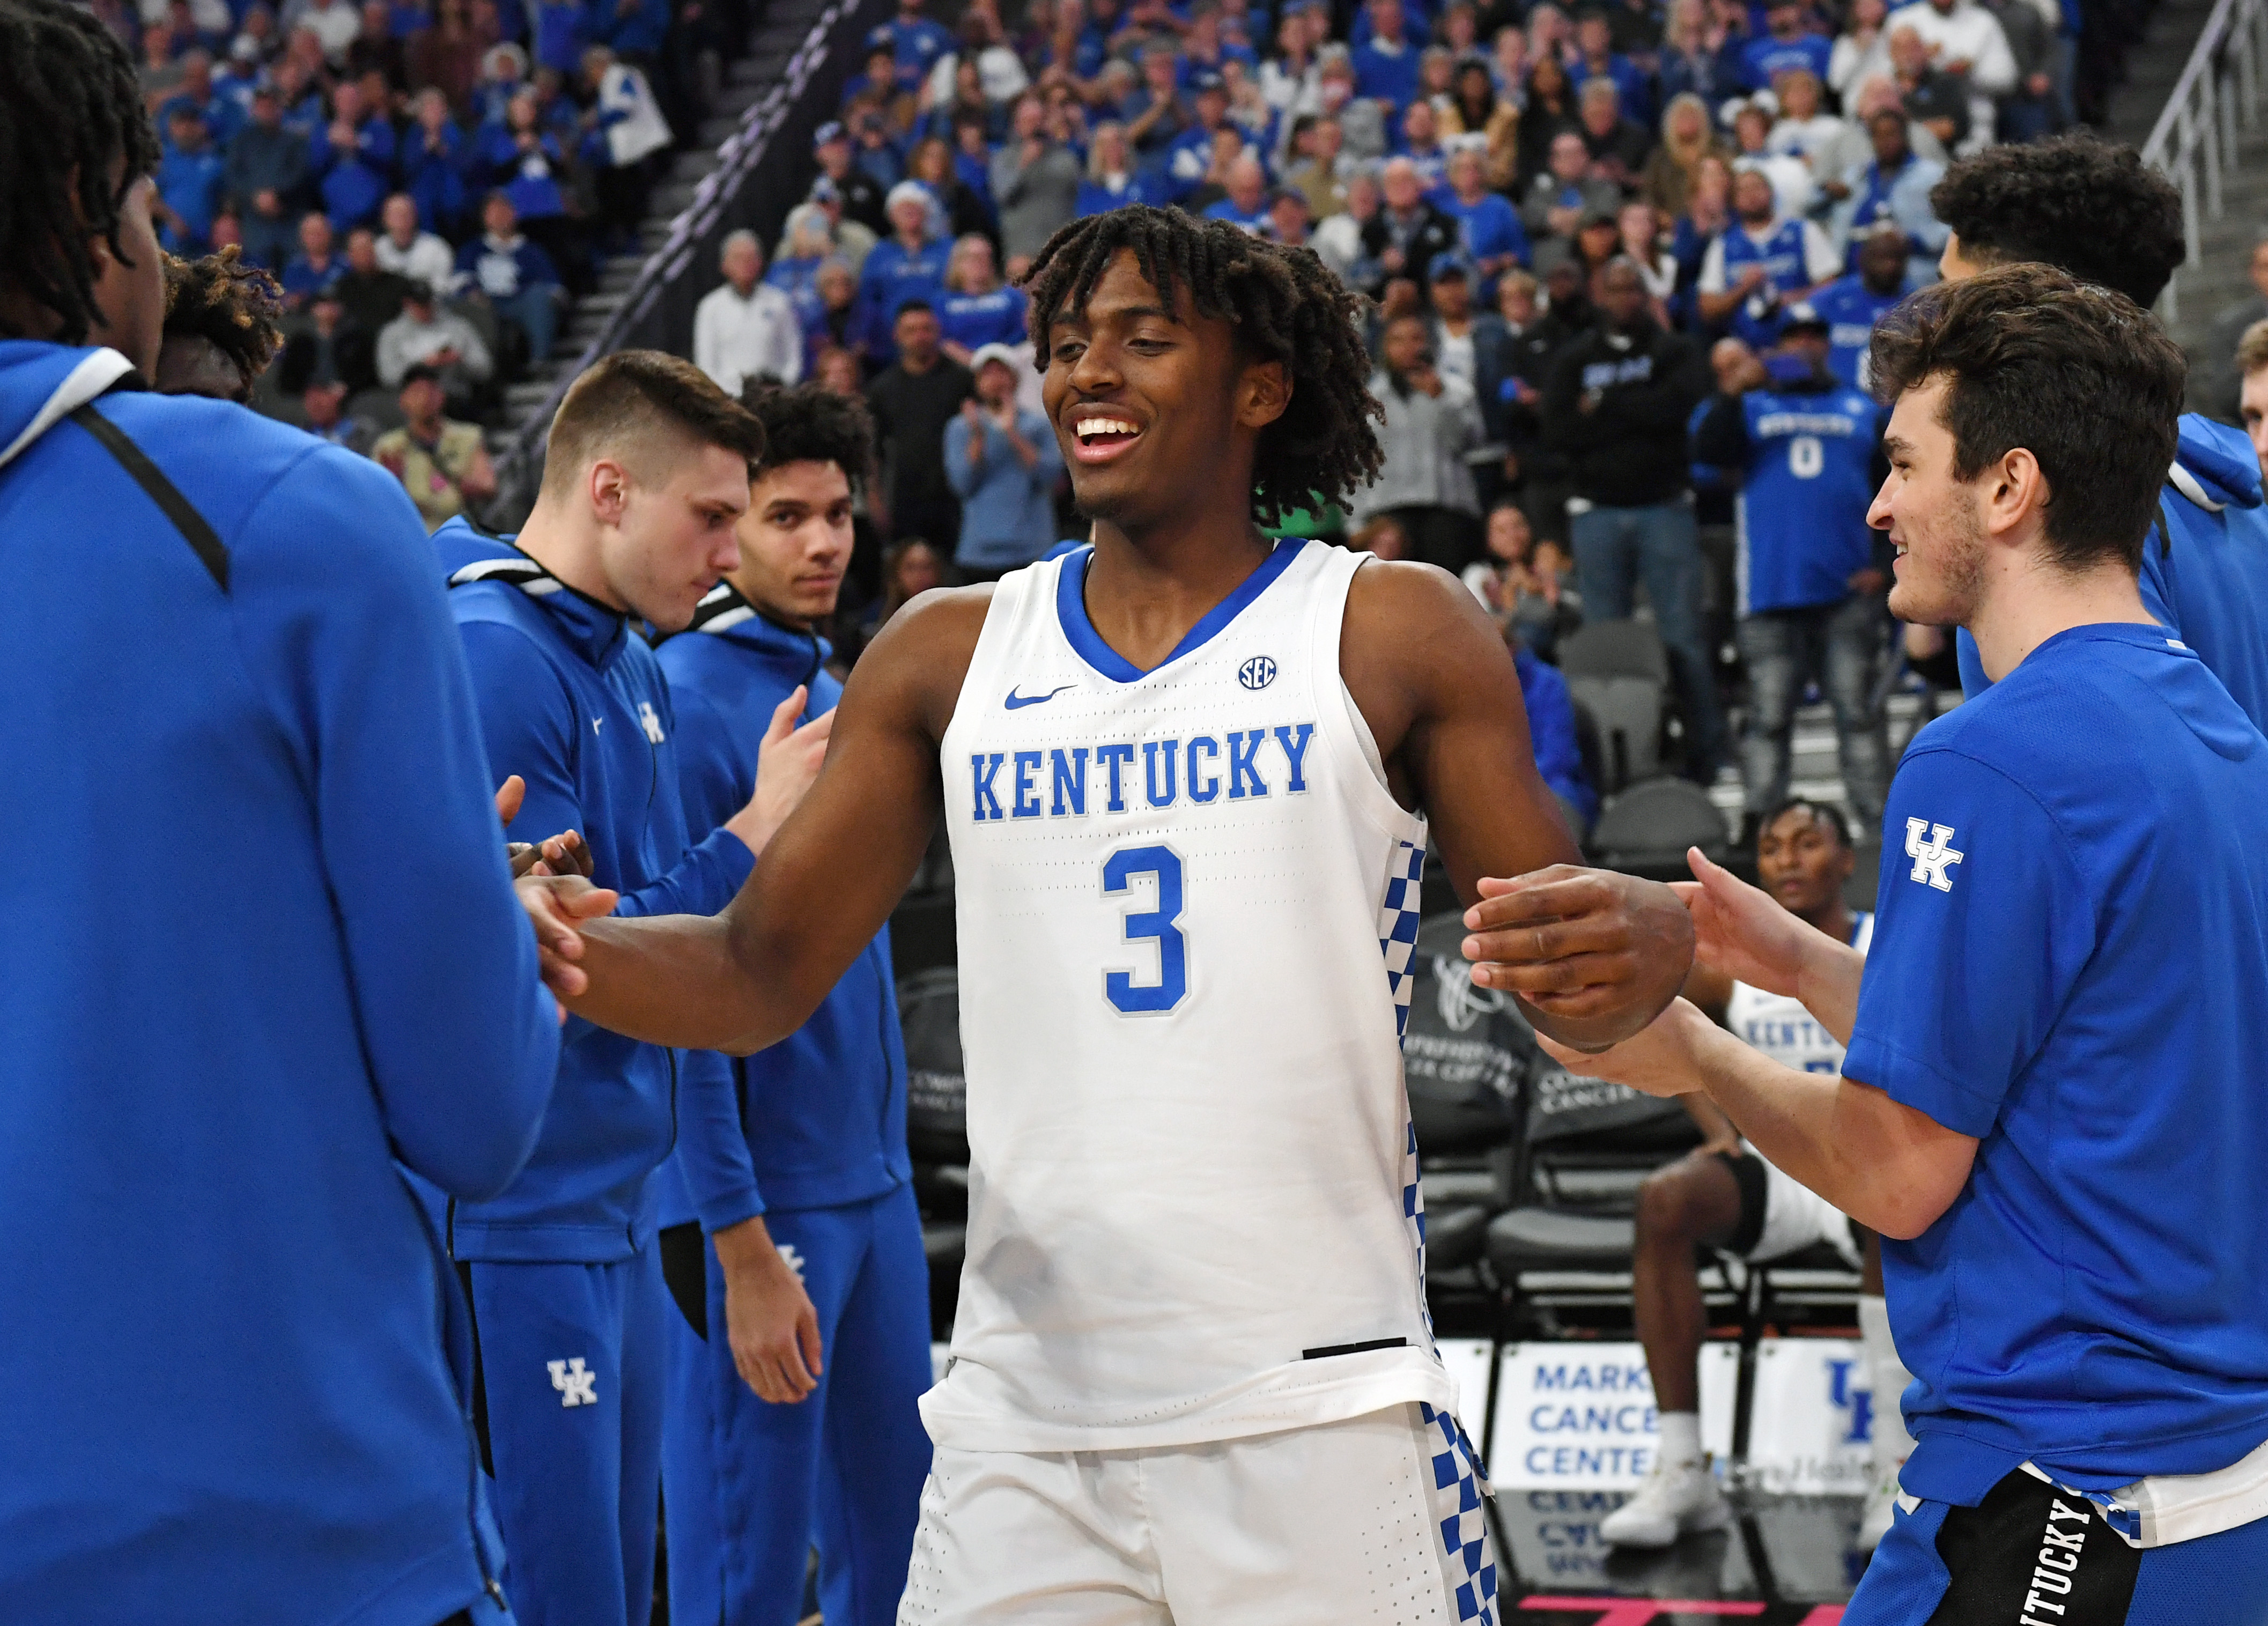 Nba Draft 2020 Kentucky Guard Tyrese Maxey Potential Lottery Pick Declares For Draft On Scheduled Day Of Ncaa Title Game Masslive Com